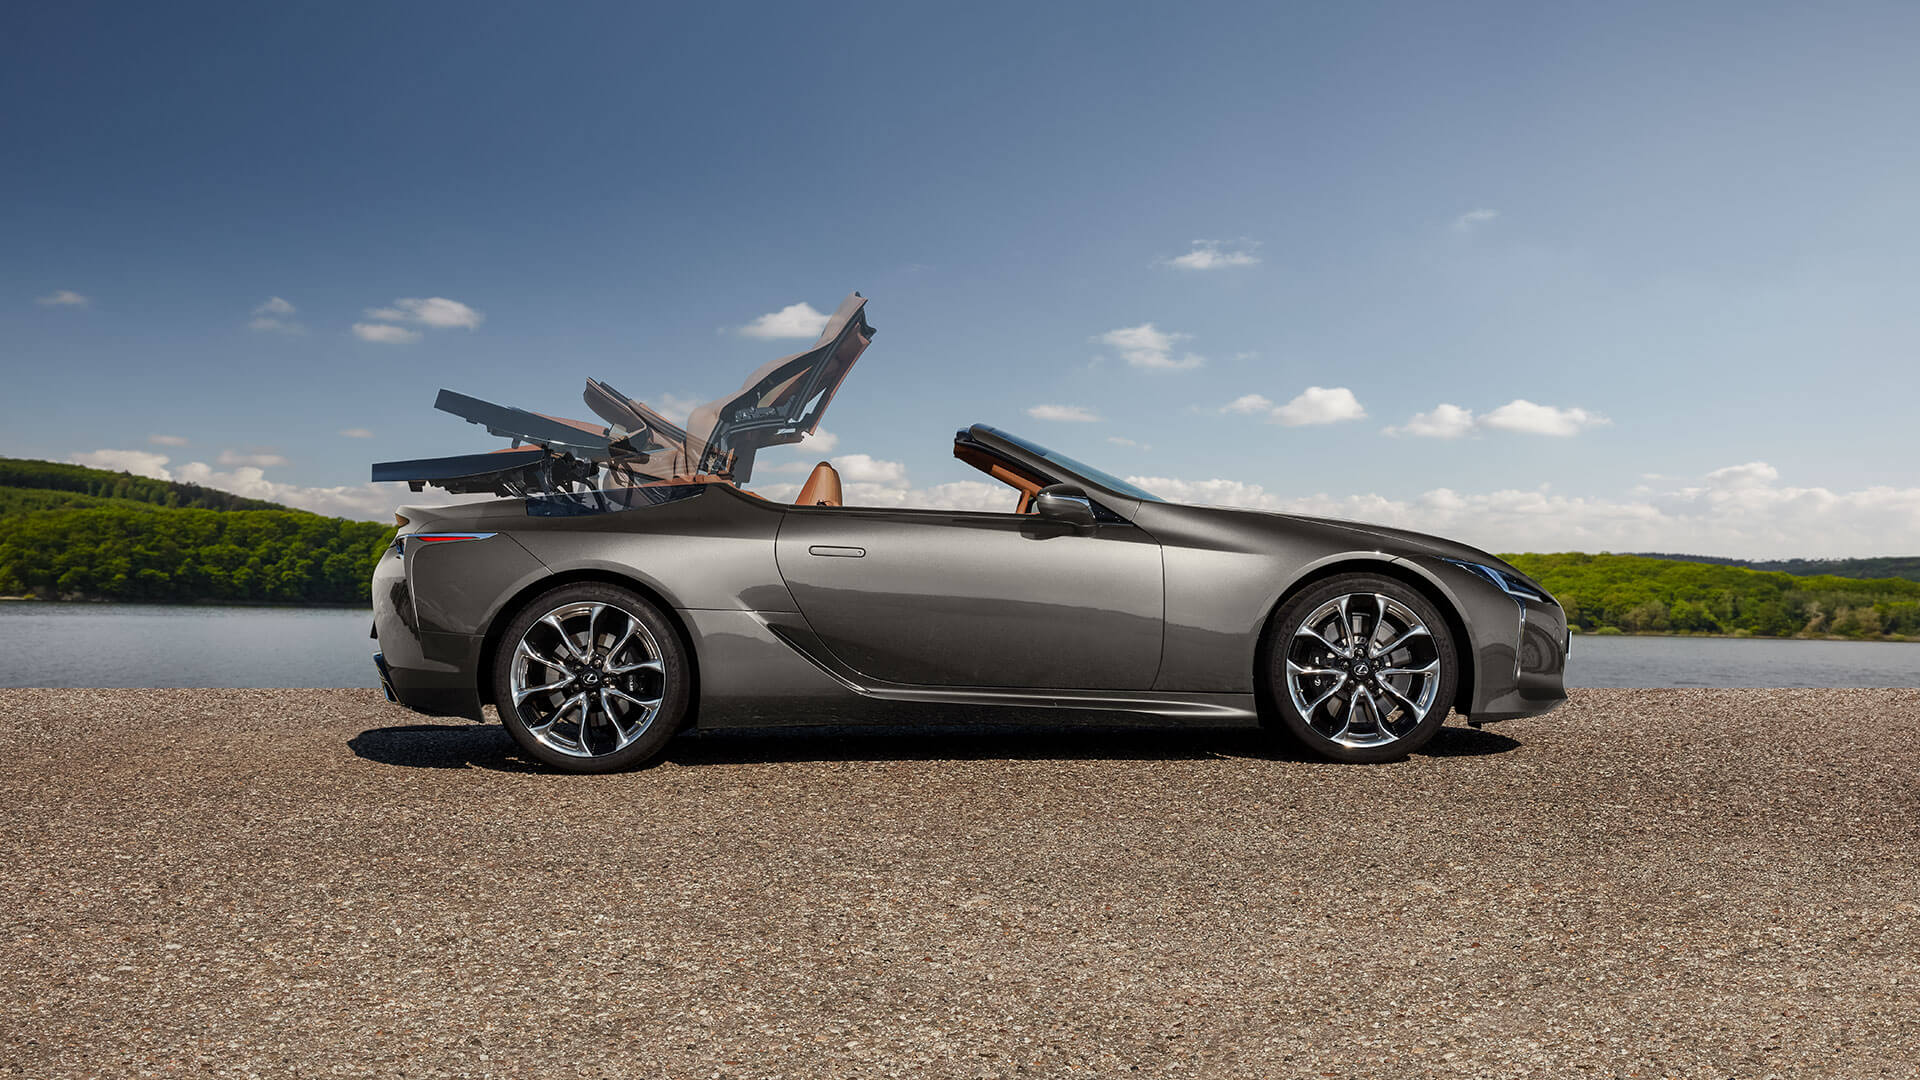 2020 lc convertible gallery 02